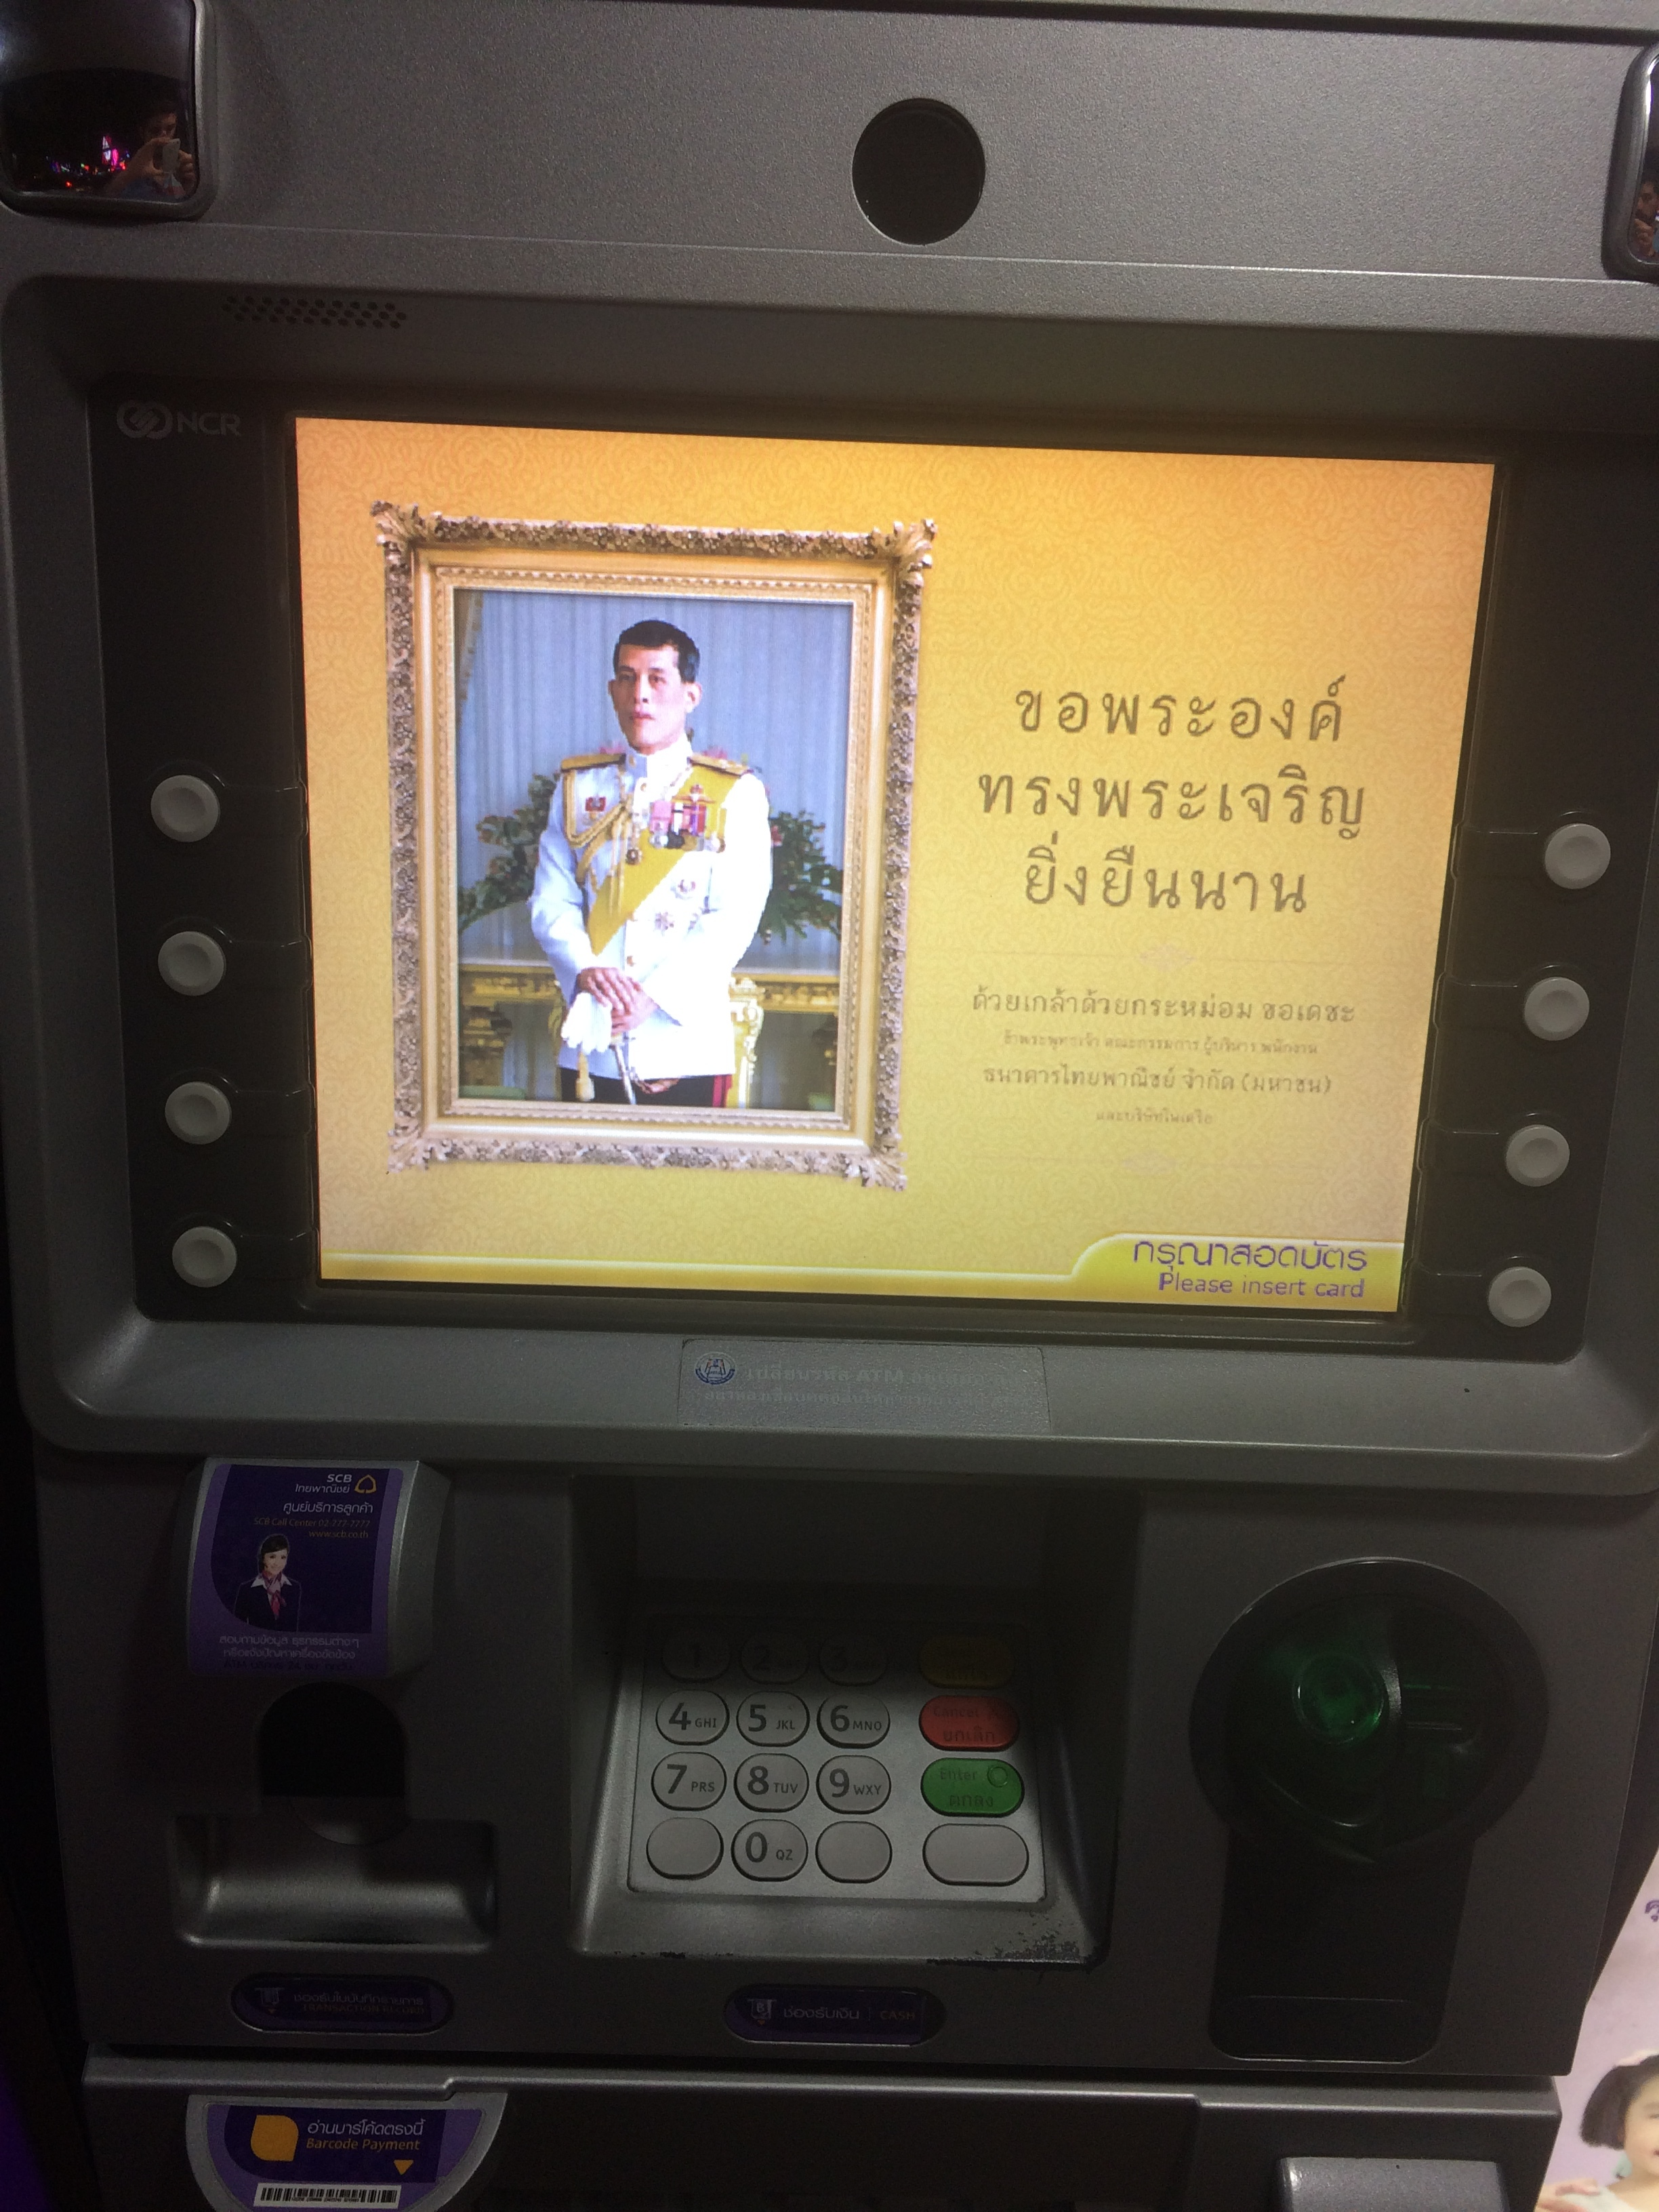 This country loves its deceased king, Rama 9! They put up memorial signs EVERYWHERE, even on ATM screens. Bangkok, Thailand.